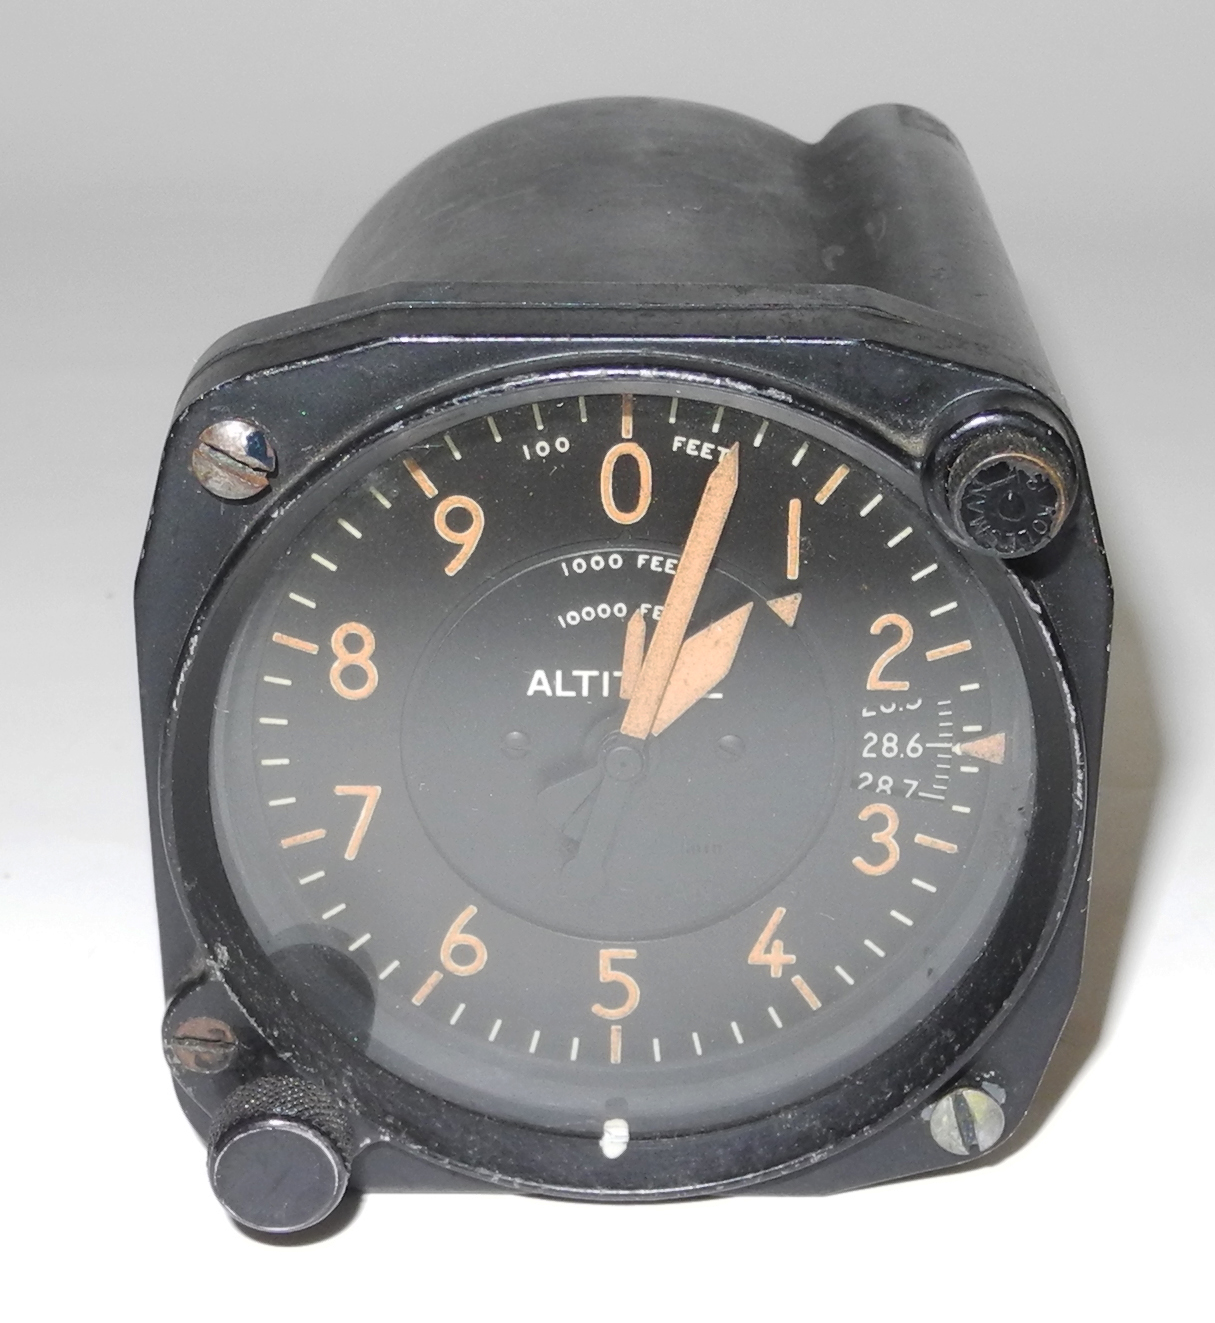 AAF Altimeter for a P-38 aircraft